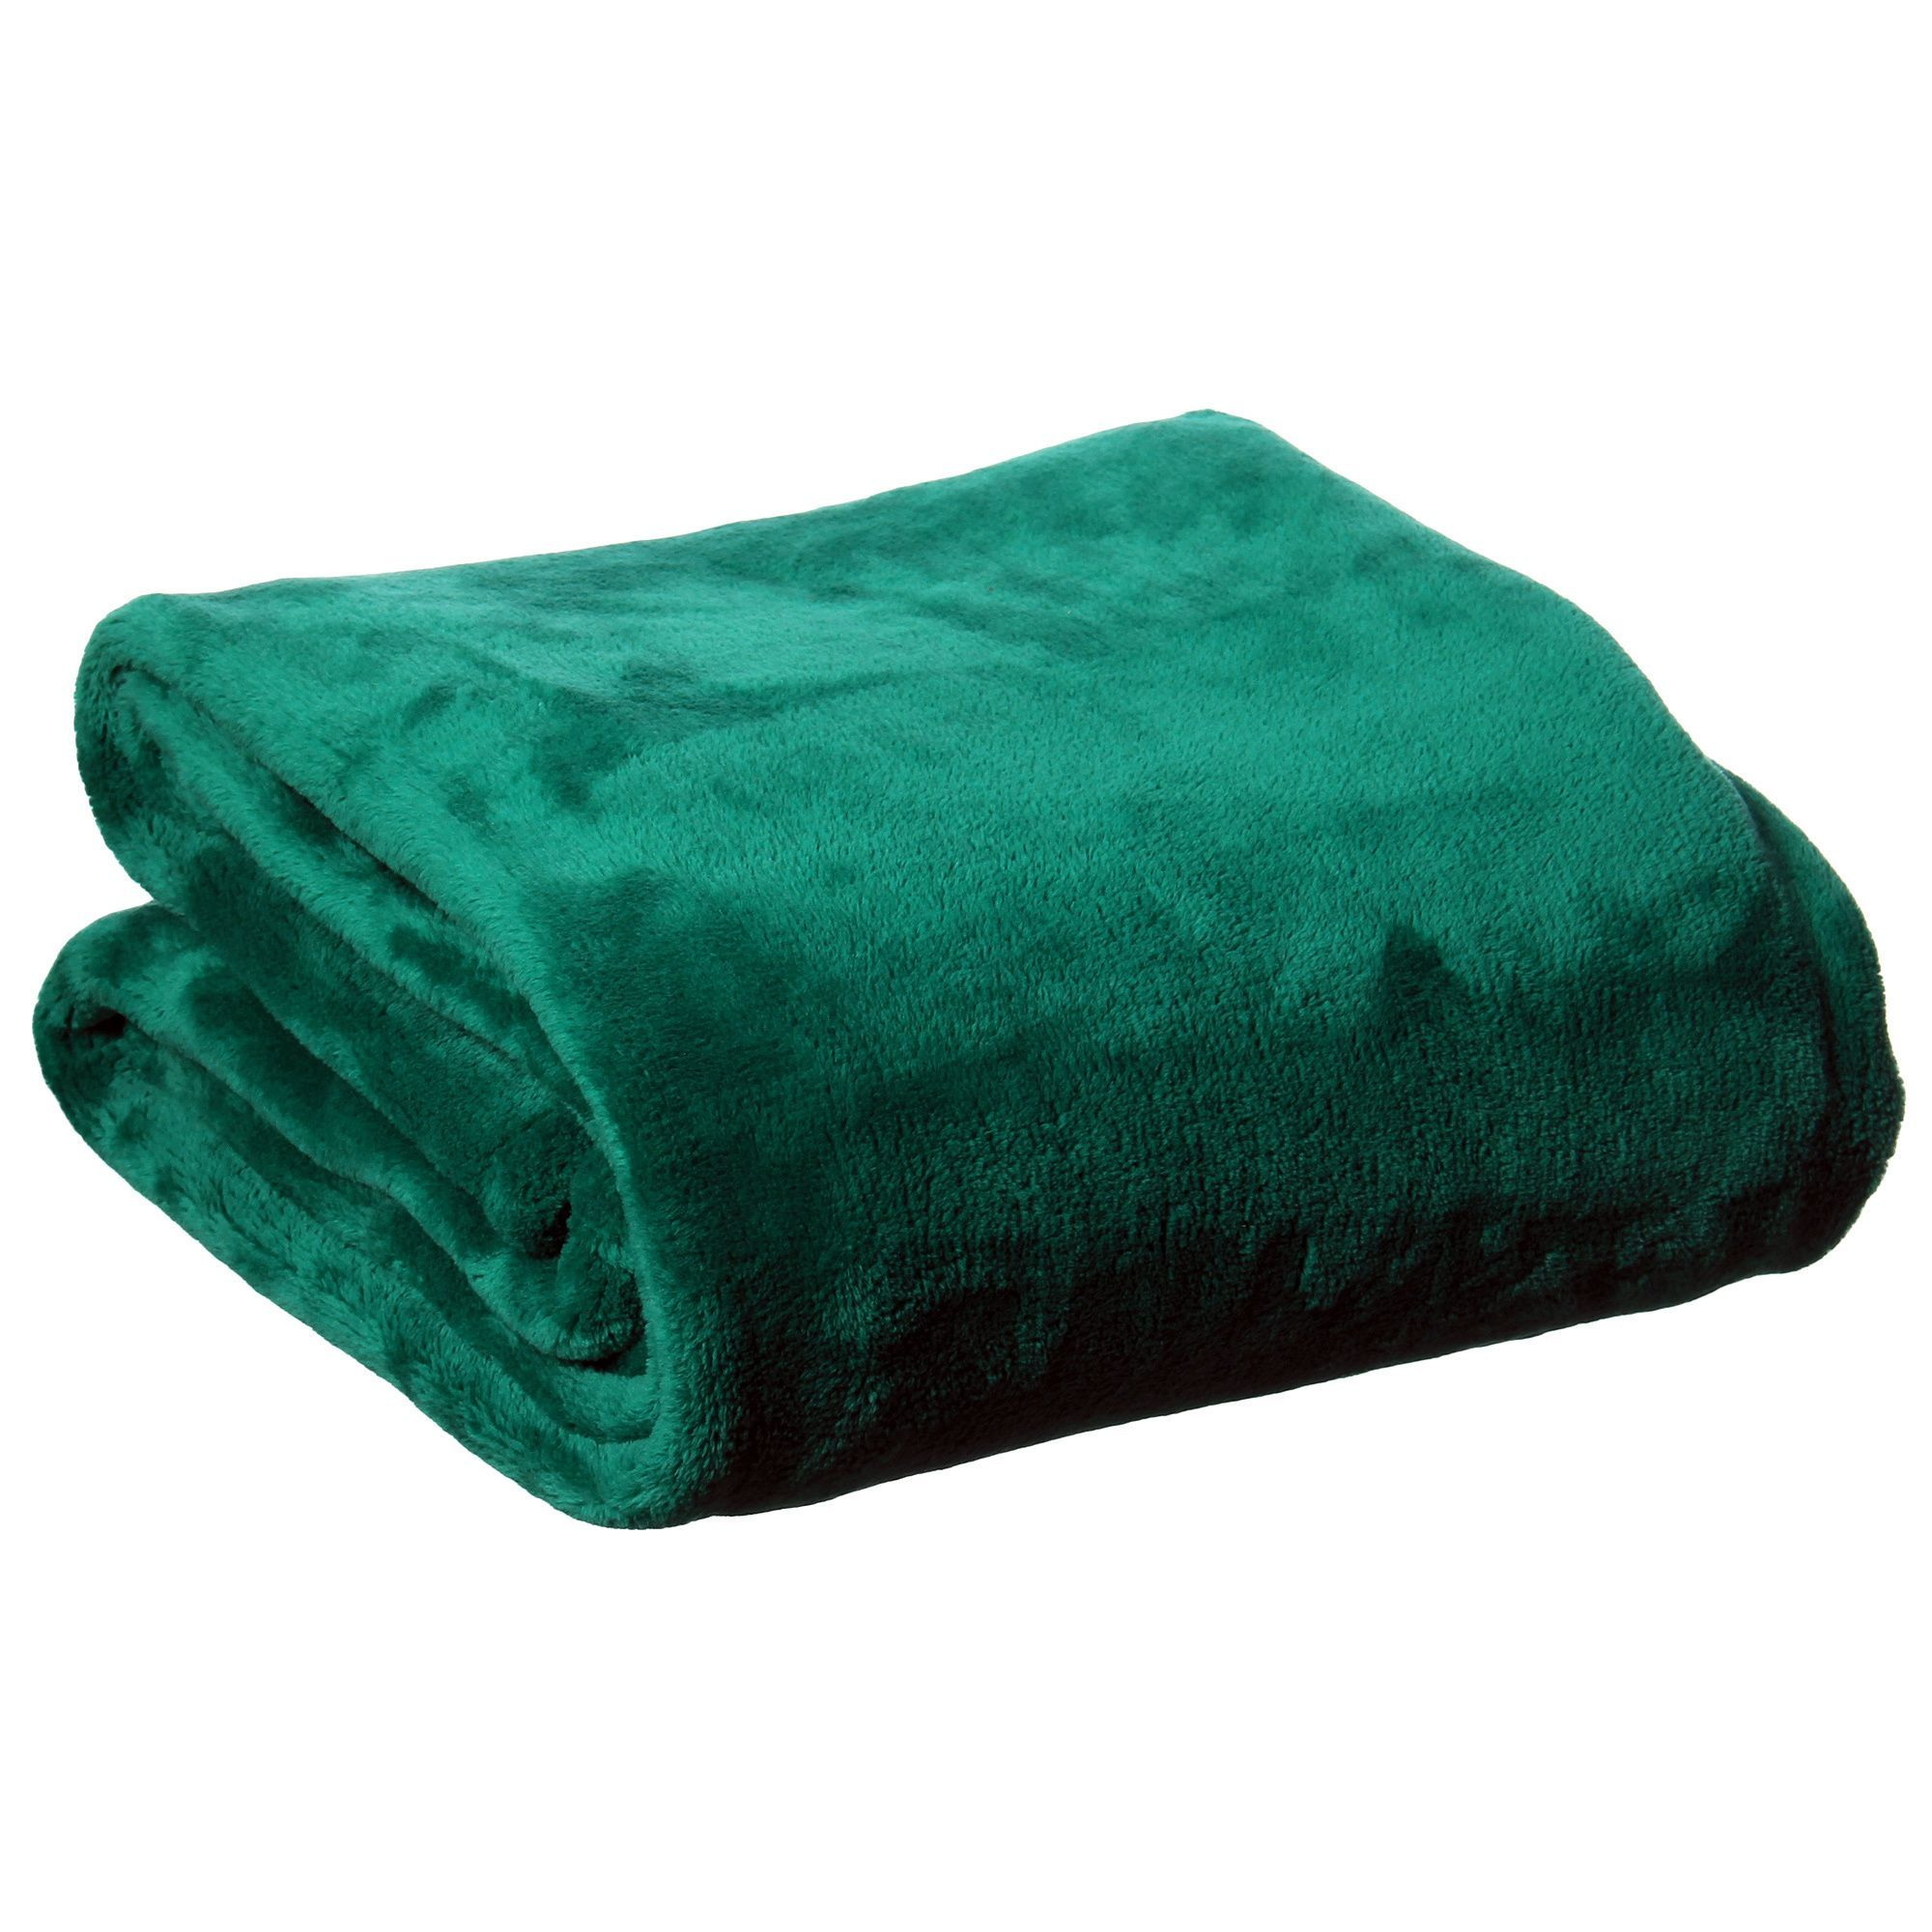 Overstock Com Online Shopping Bedding Furniture Electronics Jewelry Clothing More In 2020 Green Throw Blanket Fleece Throw Blanket Plush Throw Blankets